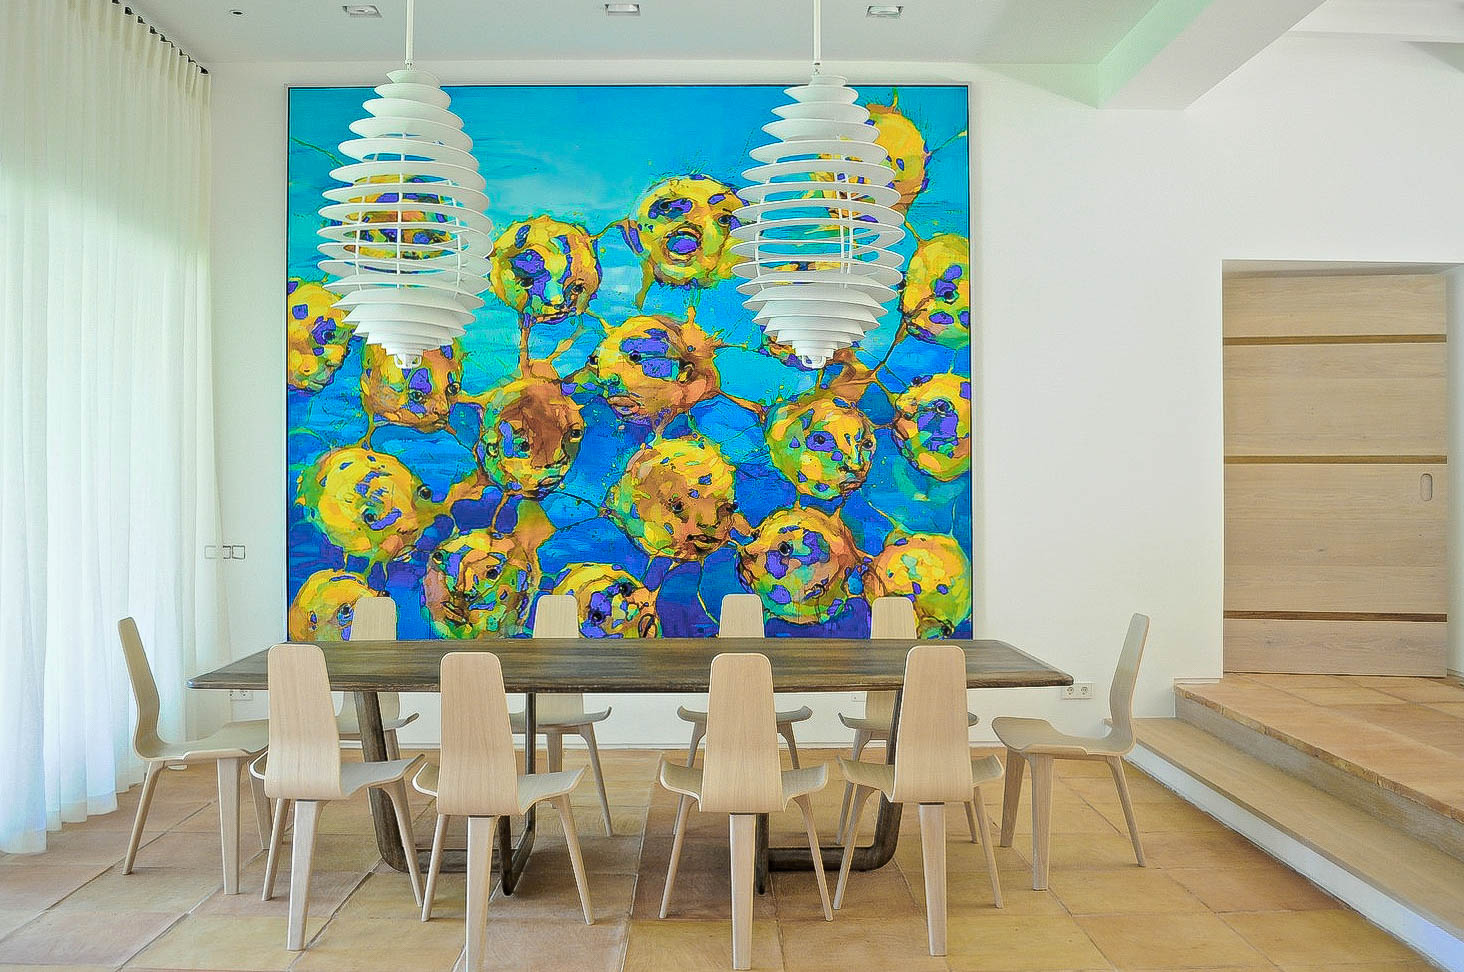 Louise Holt Mallorca dining room